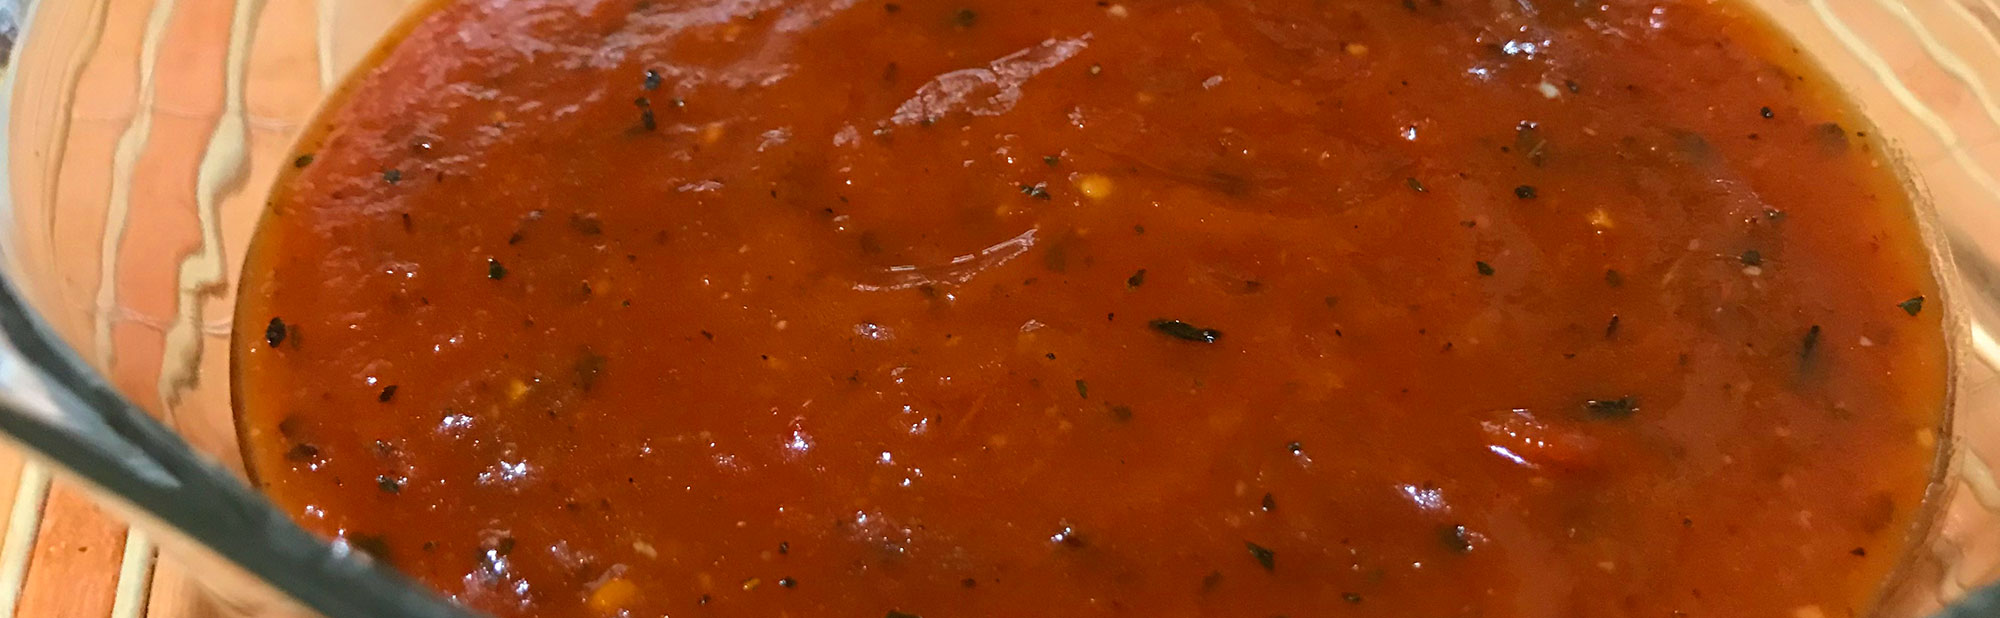 La Antojadera | Tomato Sauce for Pizza